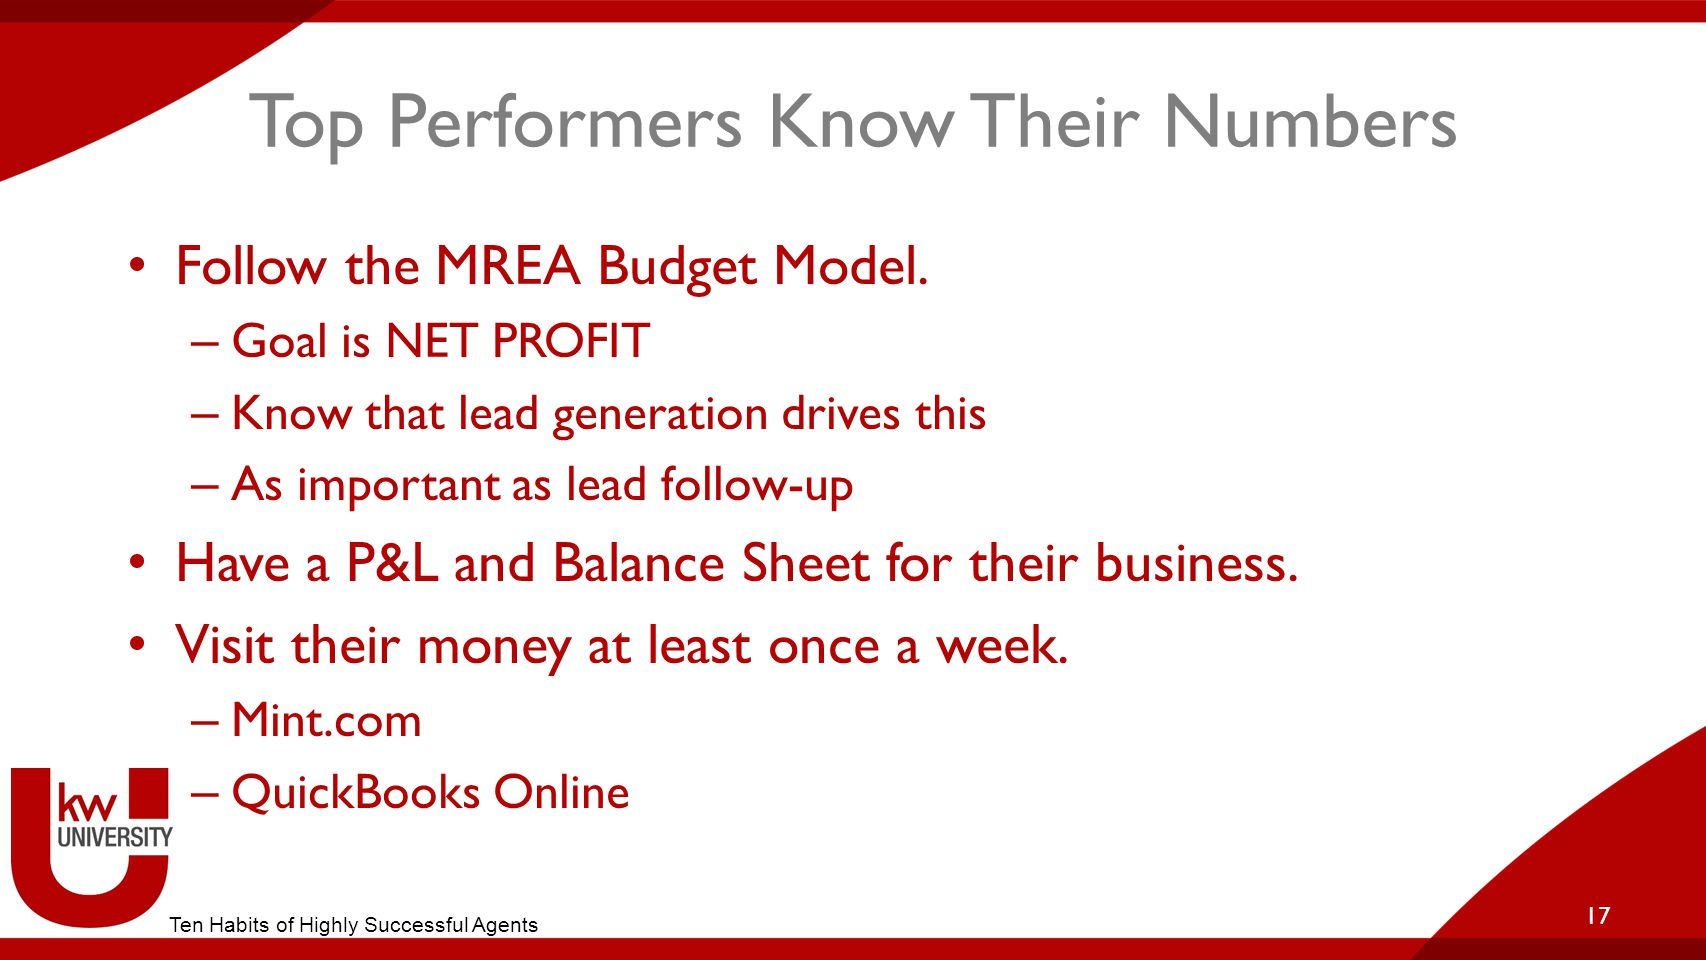 Top Performers Know Their Numbers